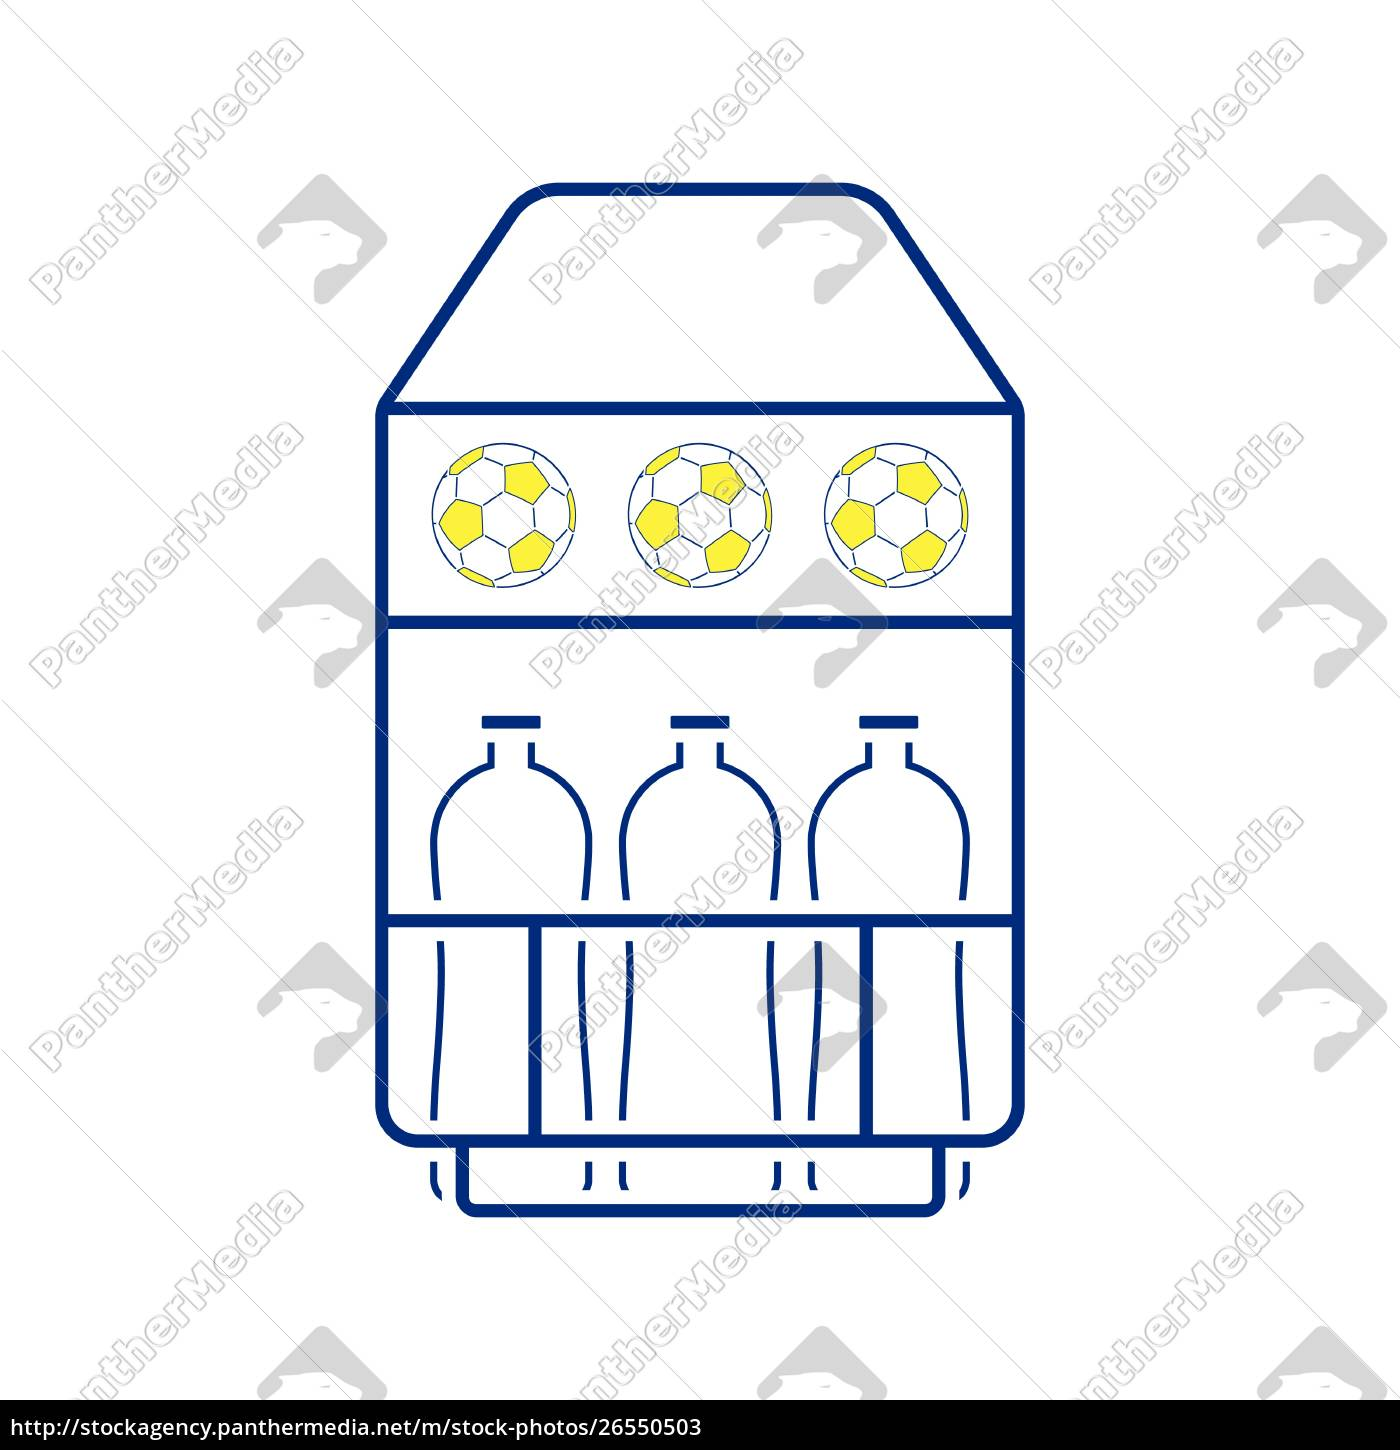 icon, of, football, field, bottle, container - 26550503